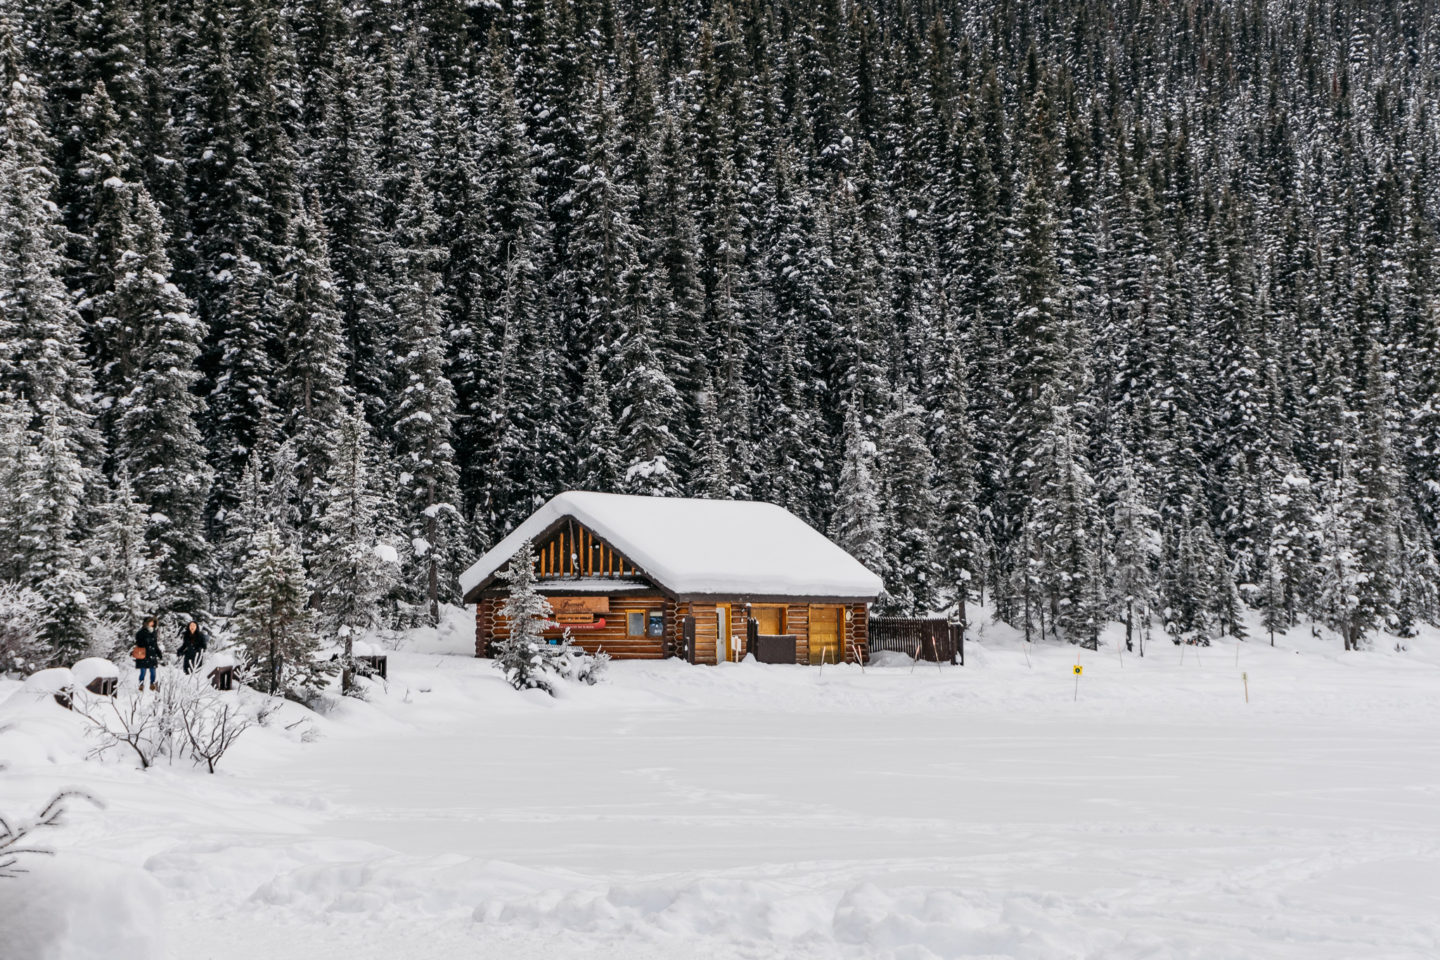 Why You Should Make The Best of Winter | The Jeneralist